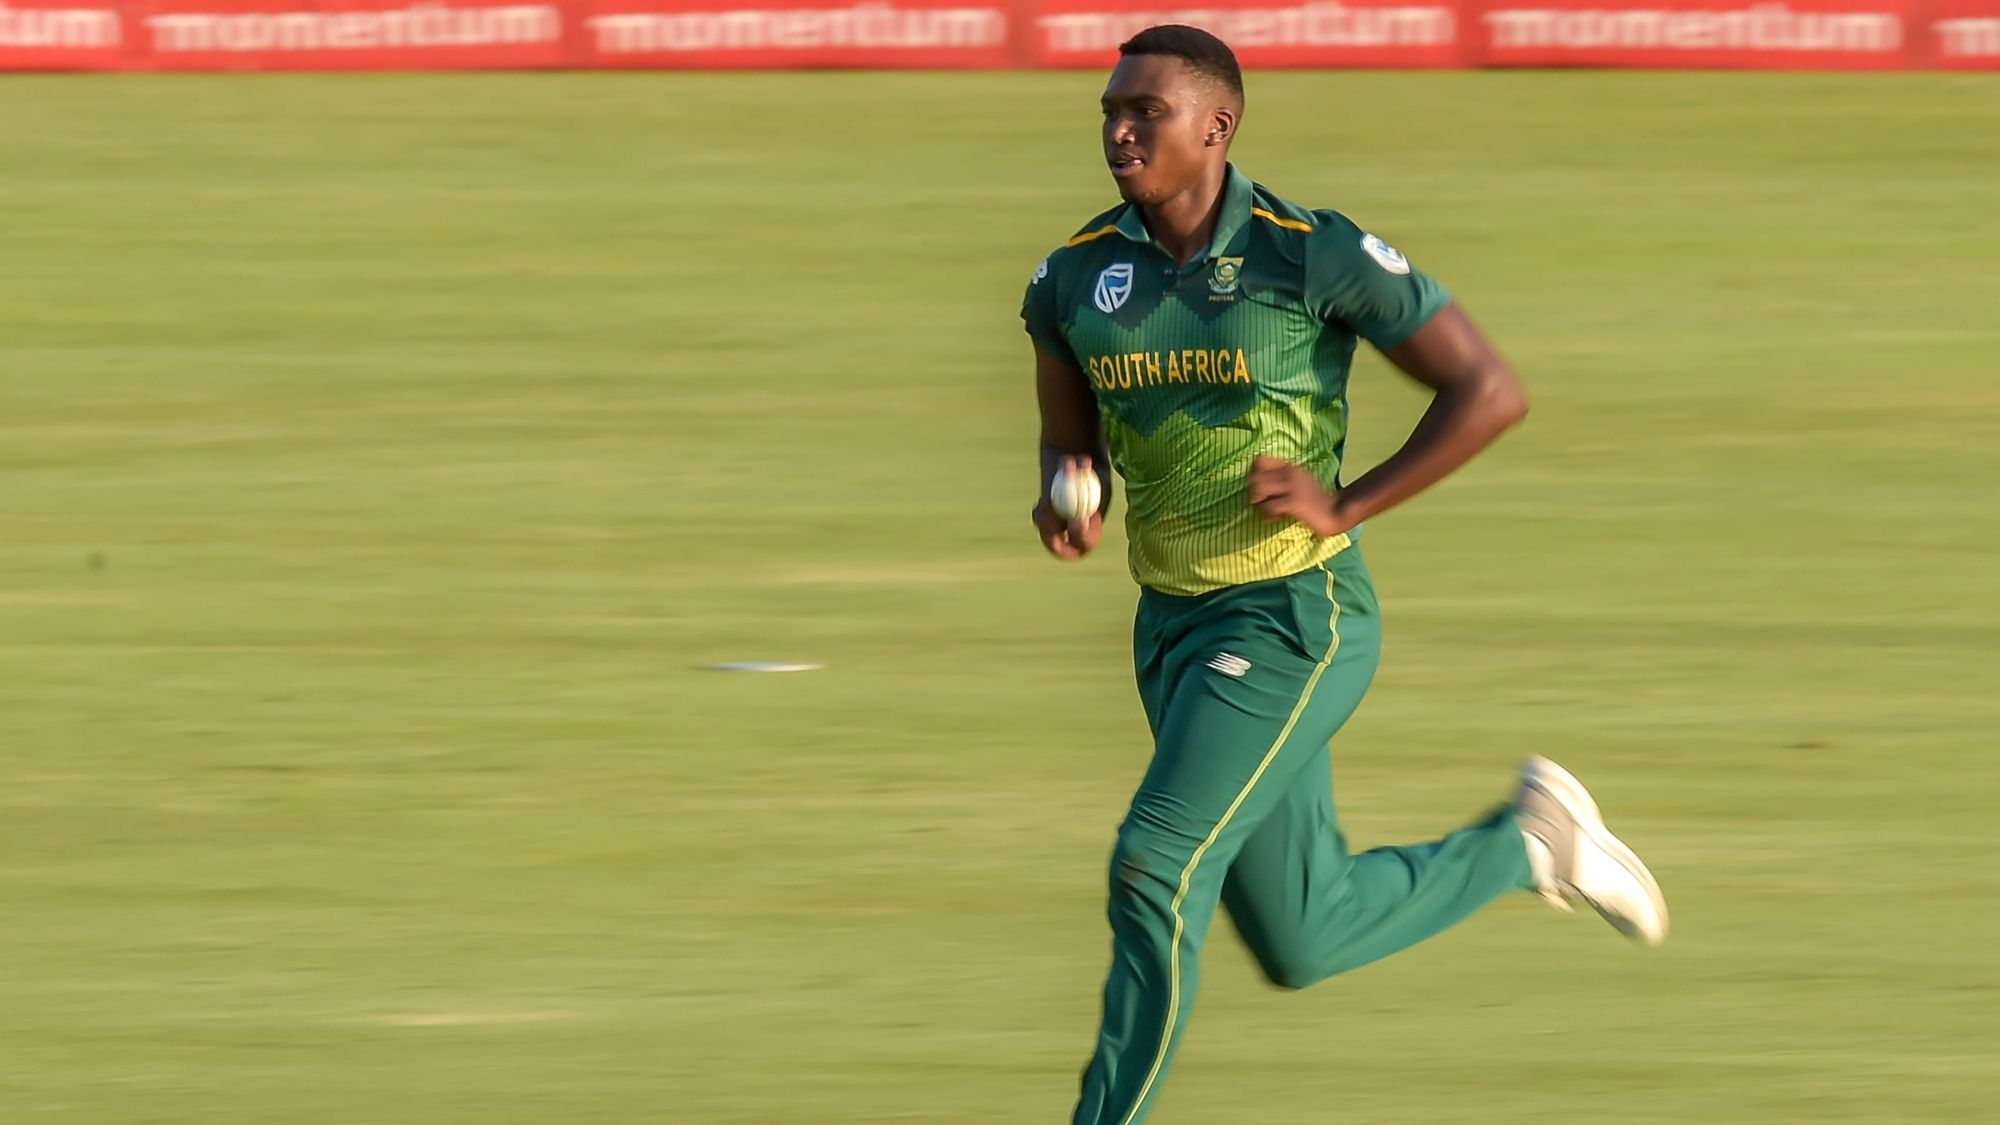 'I believe we owe them one' – Ngidi looking forward to meeting India at CWC19